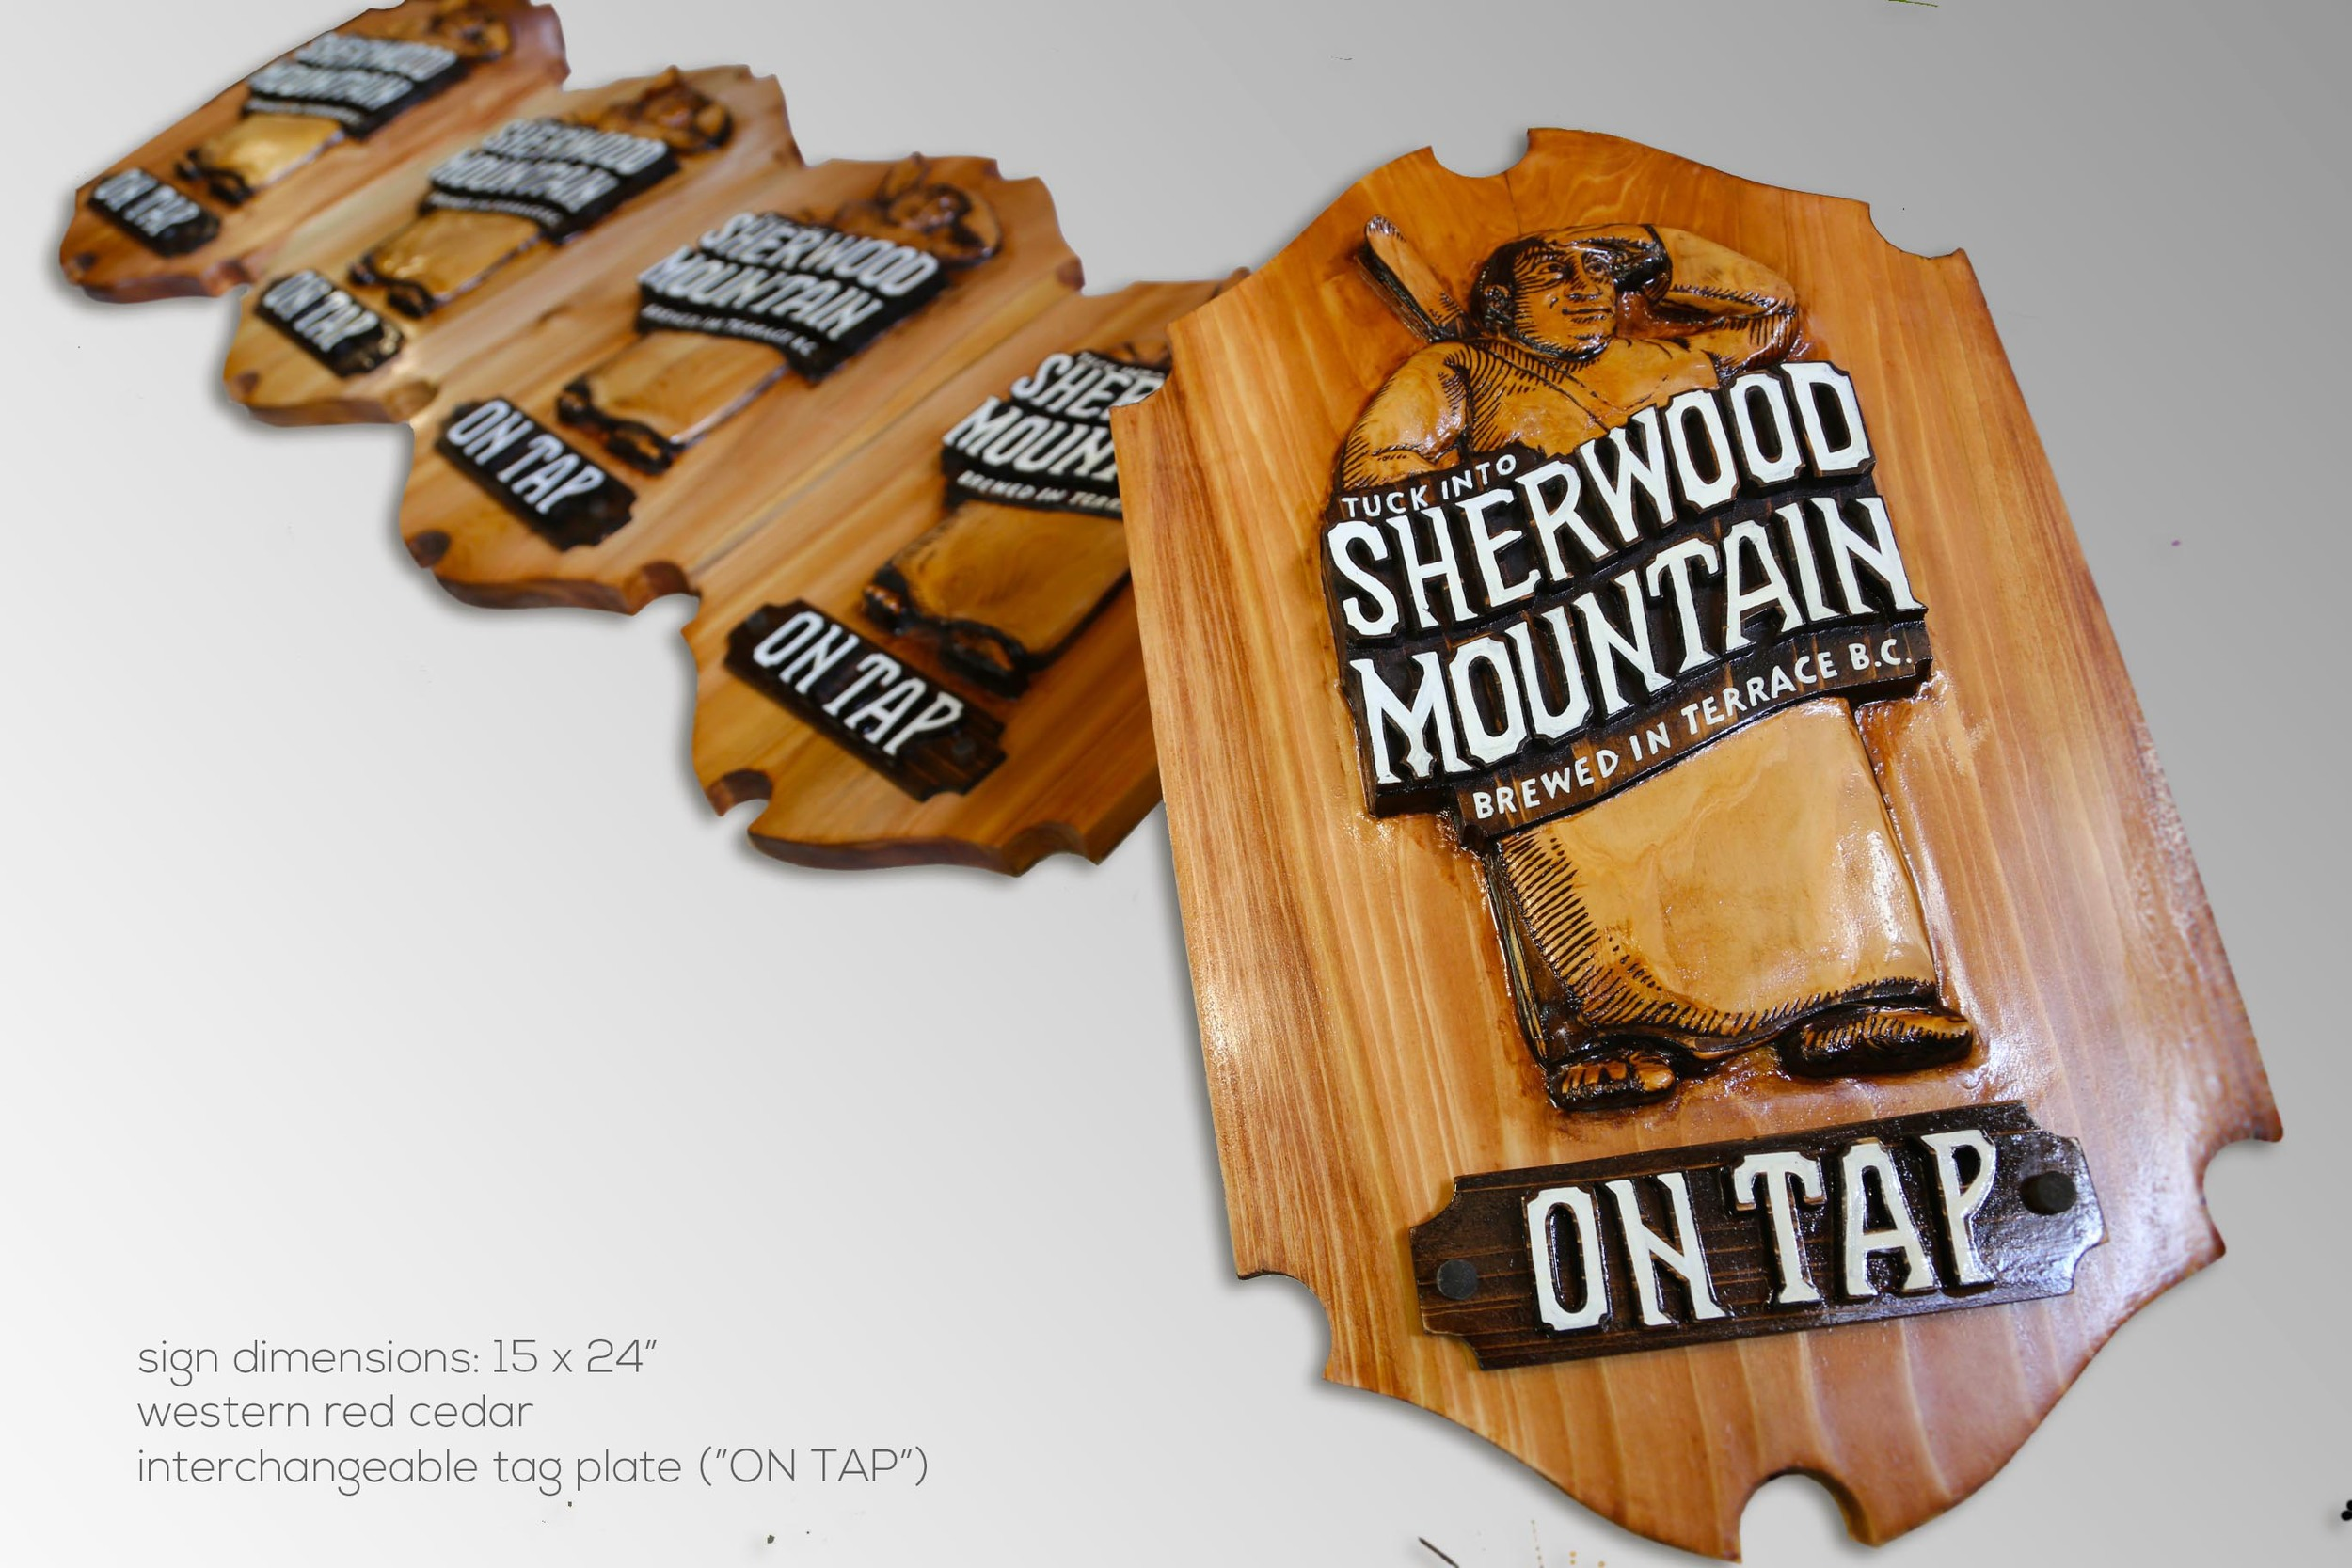 "Sherwood Mountain Brewery: Bar Plaque with interchangeable Tag Plate (""ON TAP"") (15x24""/ 380x610mm)"